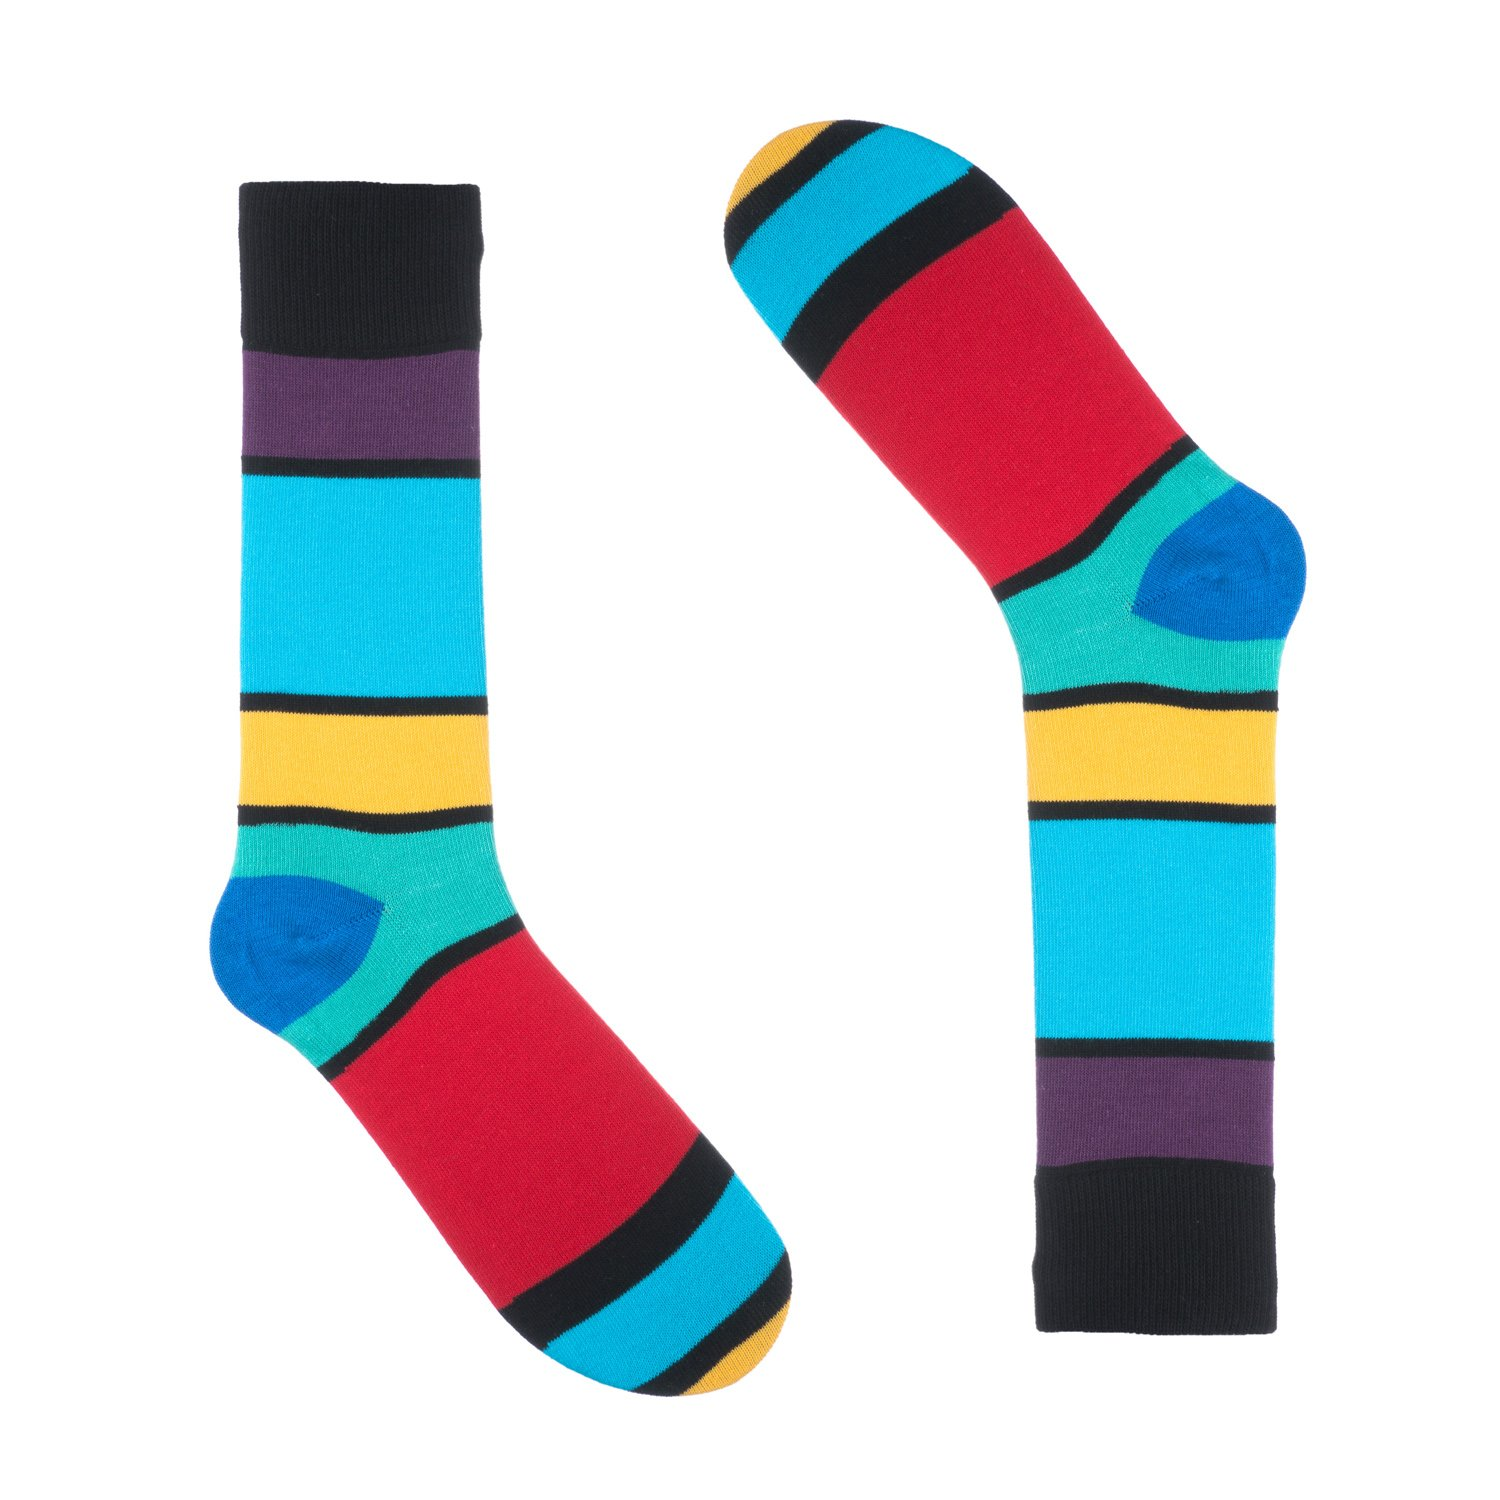 Ivory Dress Sock Colorful One Pair Size 8-13 Cotton Black Colorful Mason Striped Socks for Men